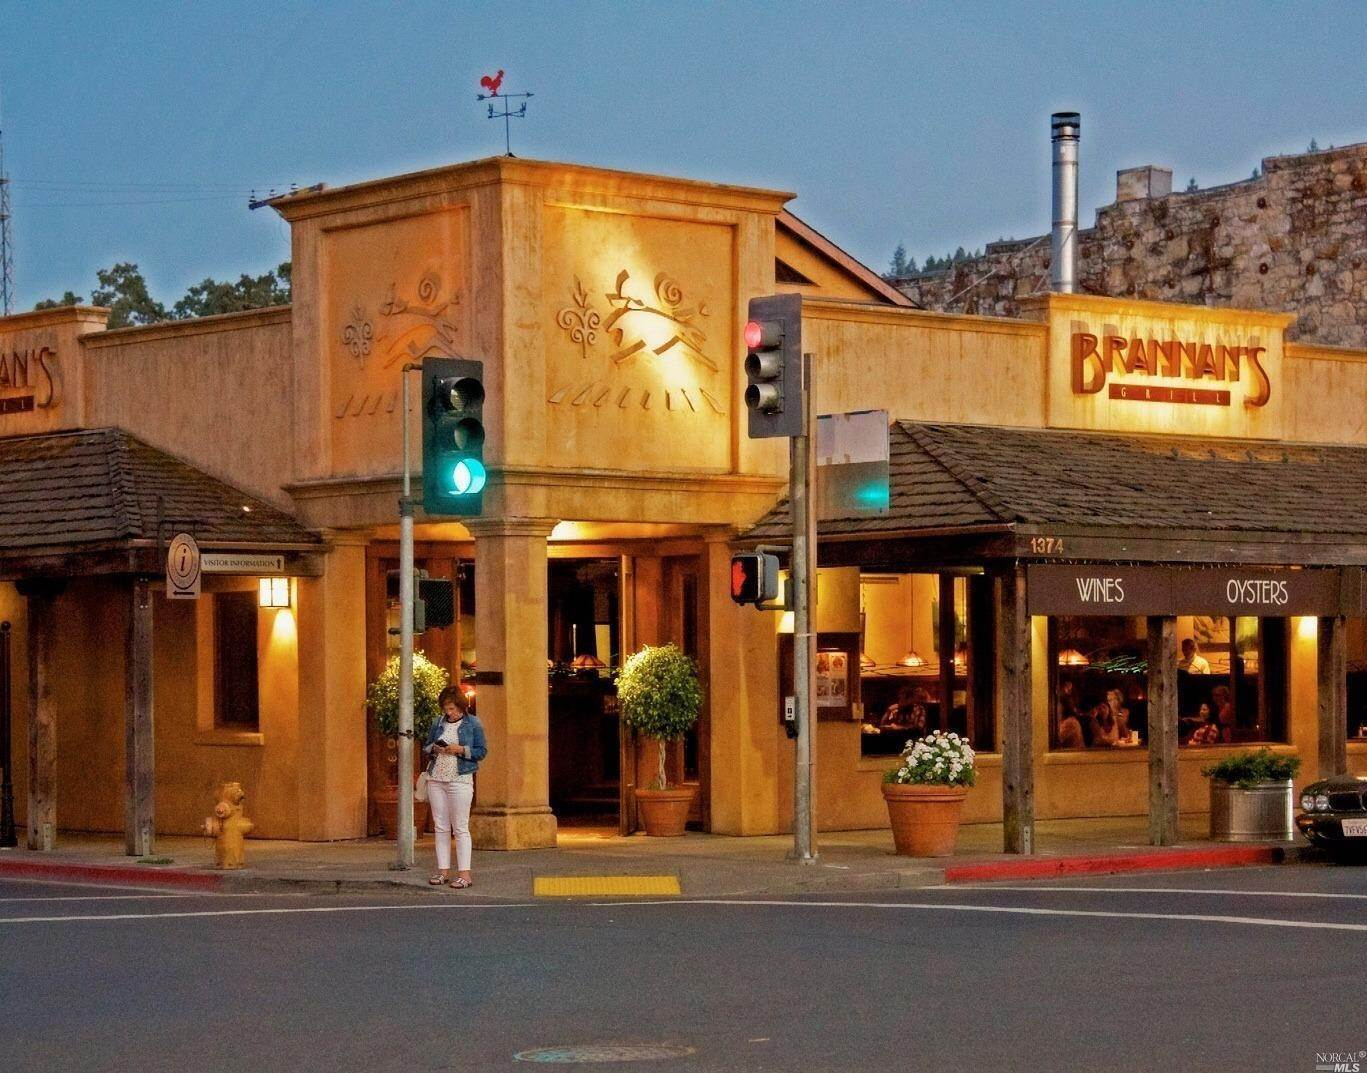 Commercial for Sale at 1374 Lincoln Avenue Calistoga, California 94515 United States